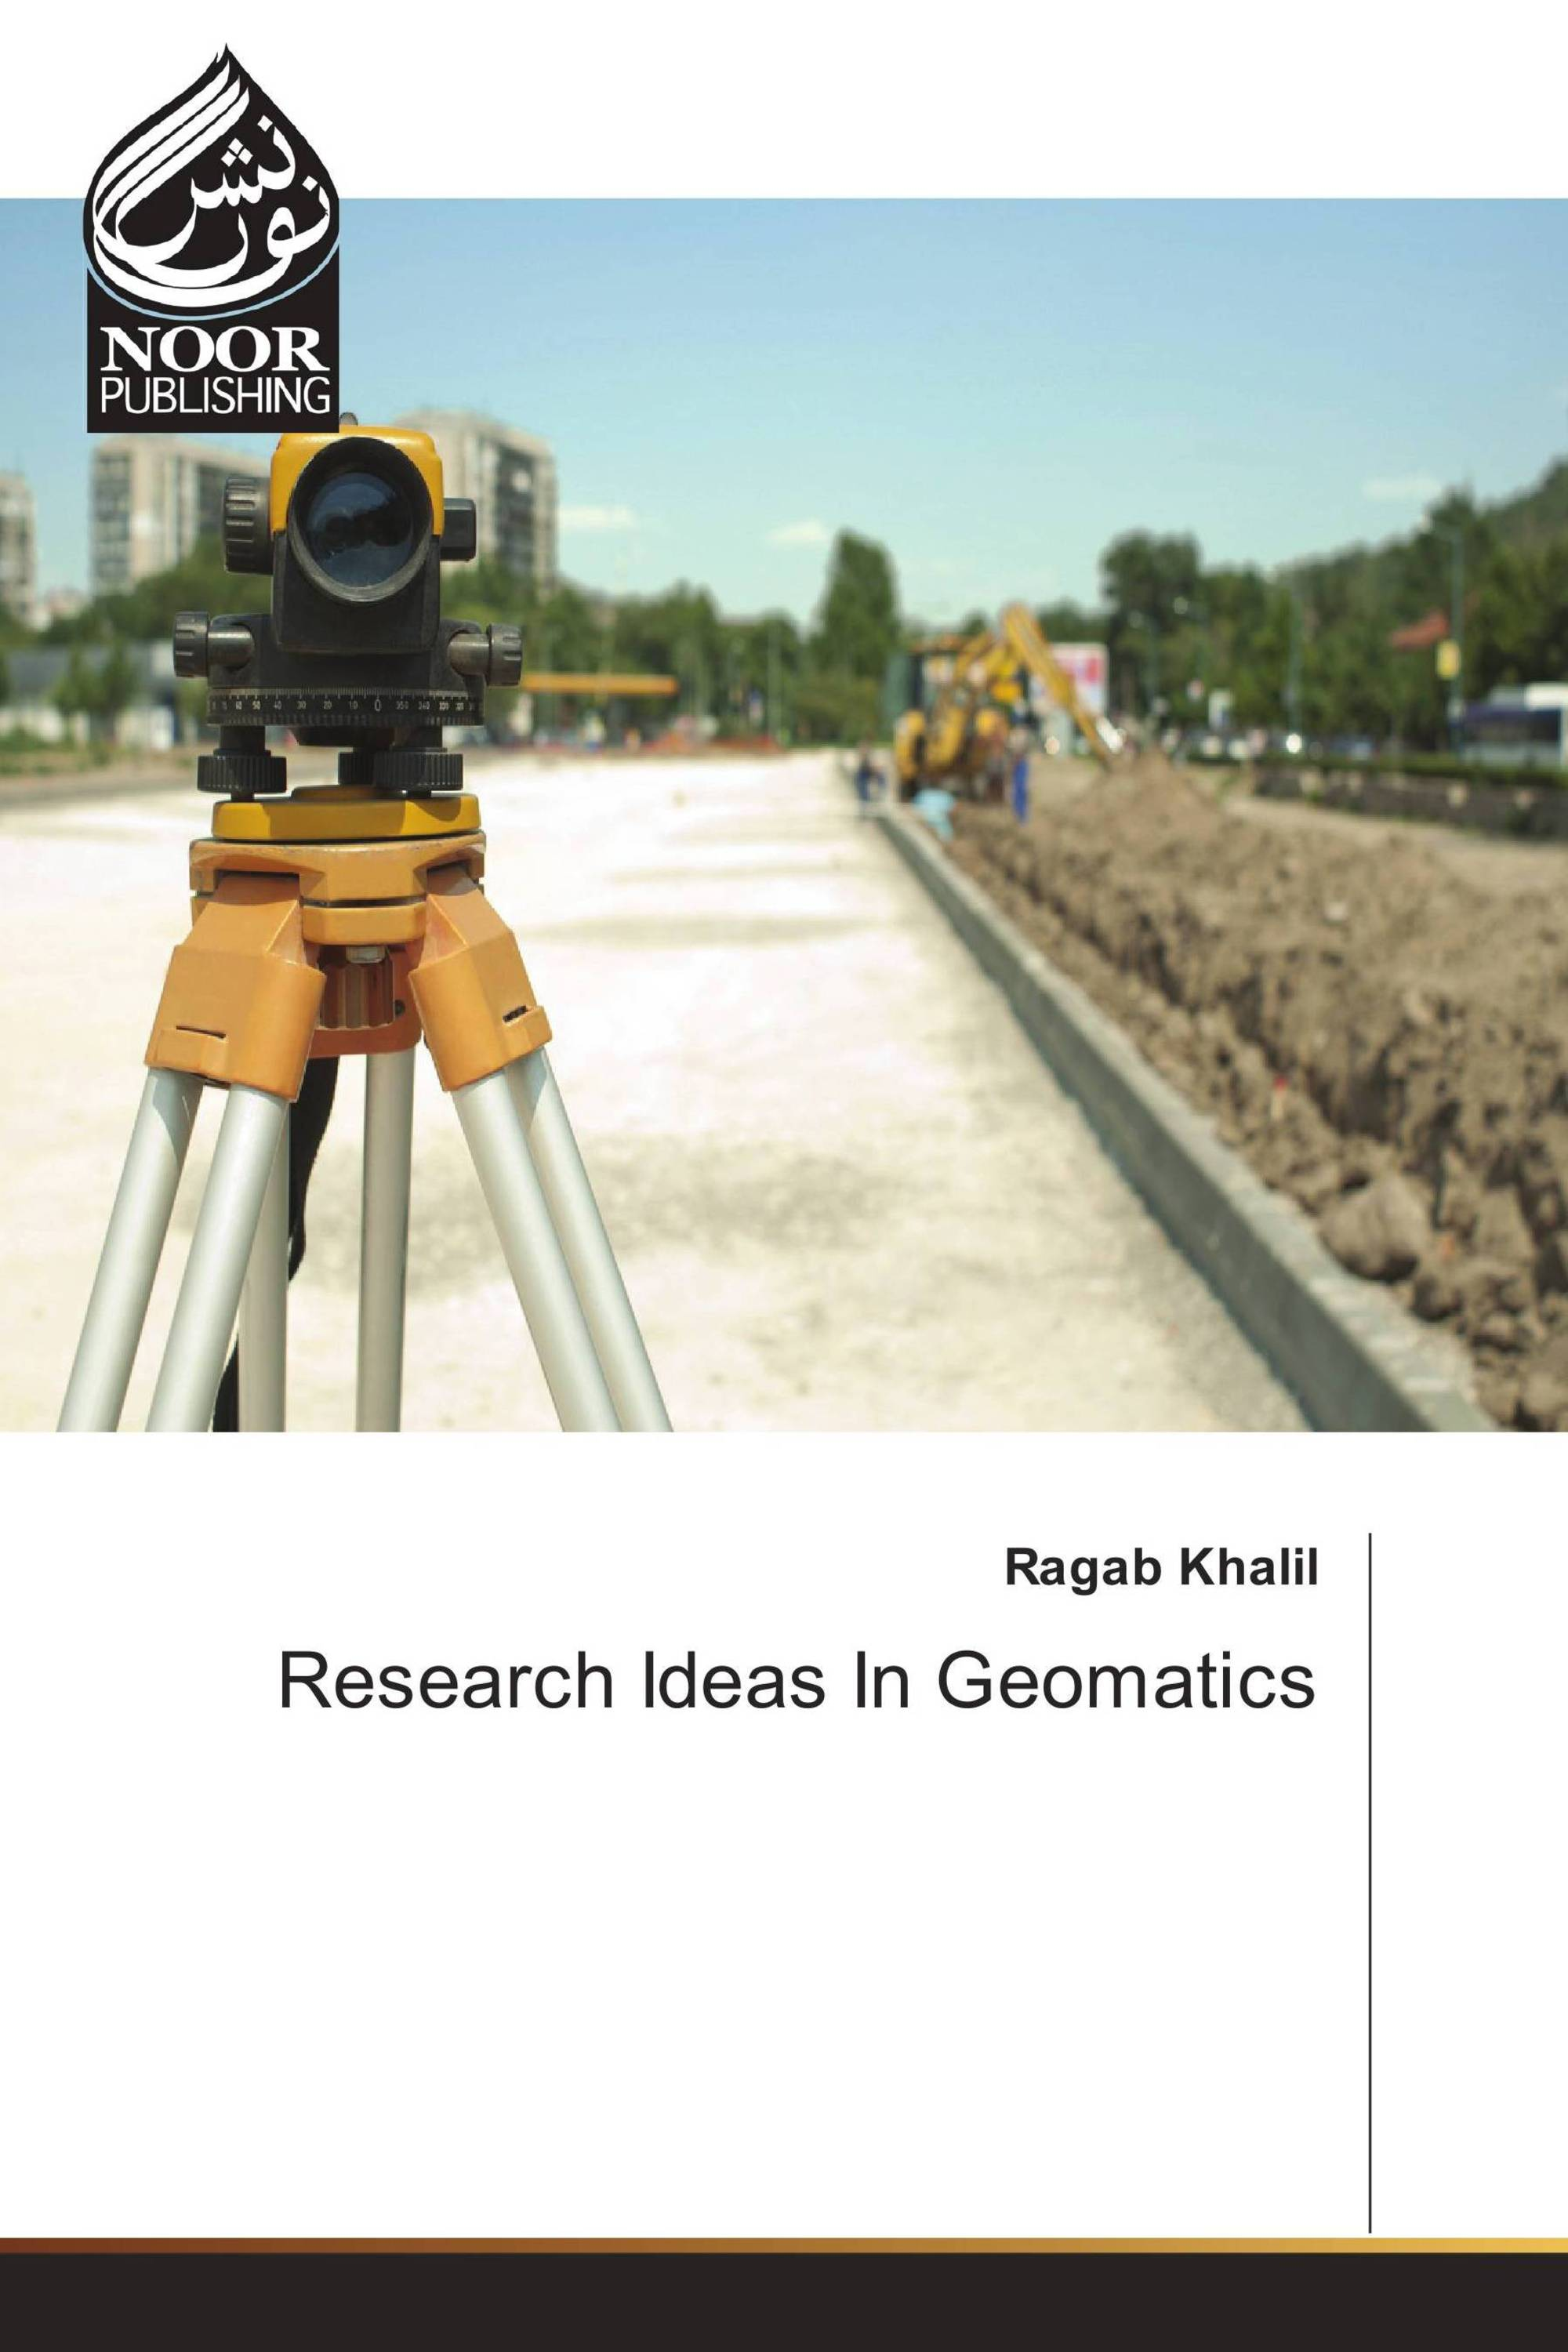 Research Ideas In Geomatics